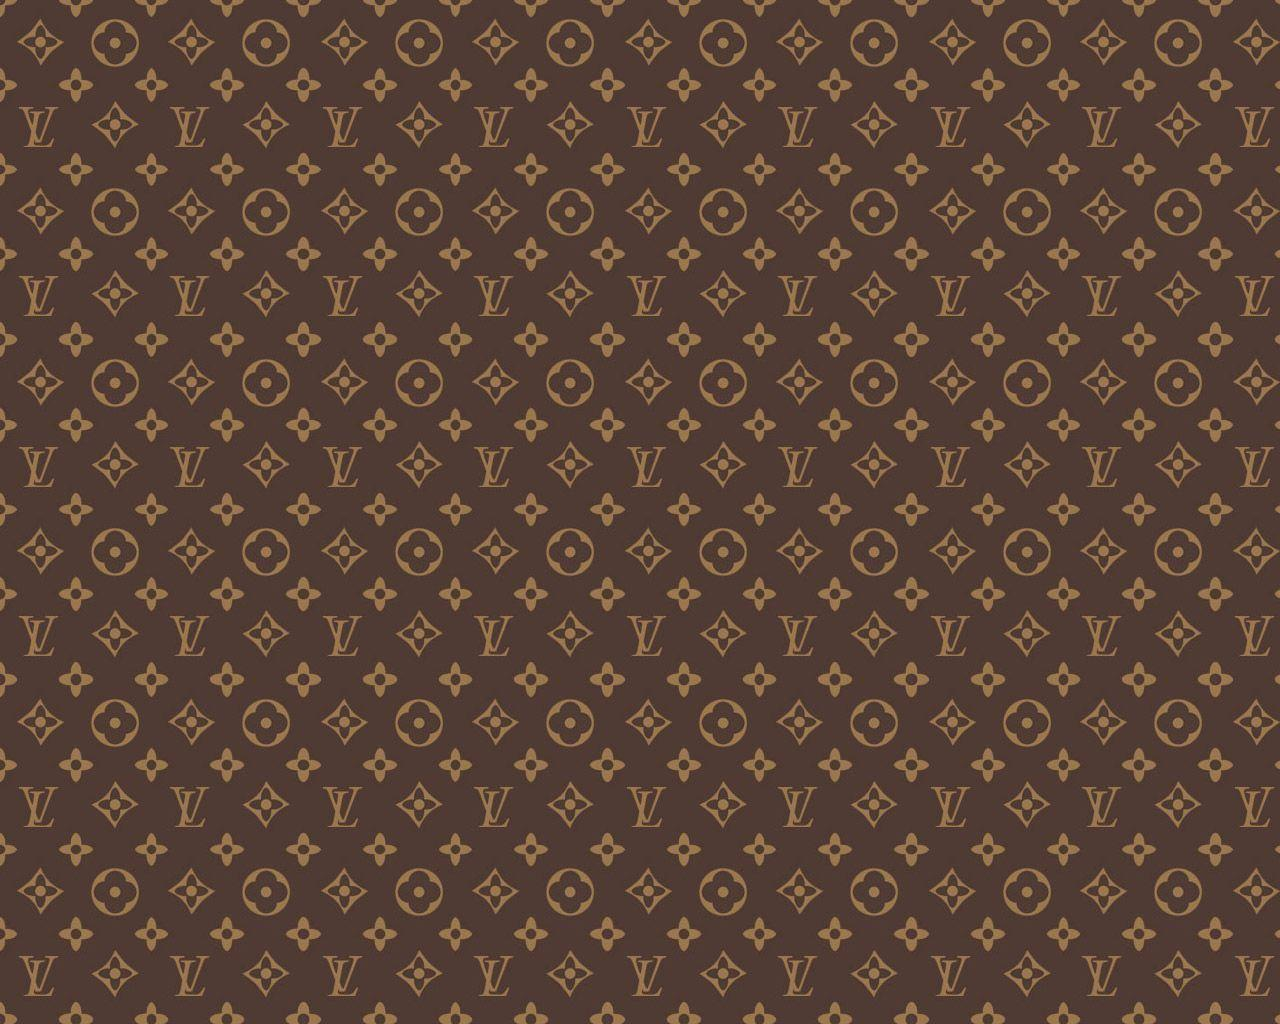 Louis Vuitton Wallpaper. To the LV fans!